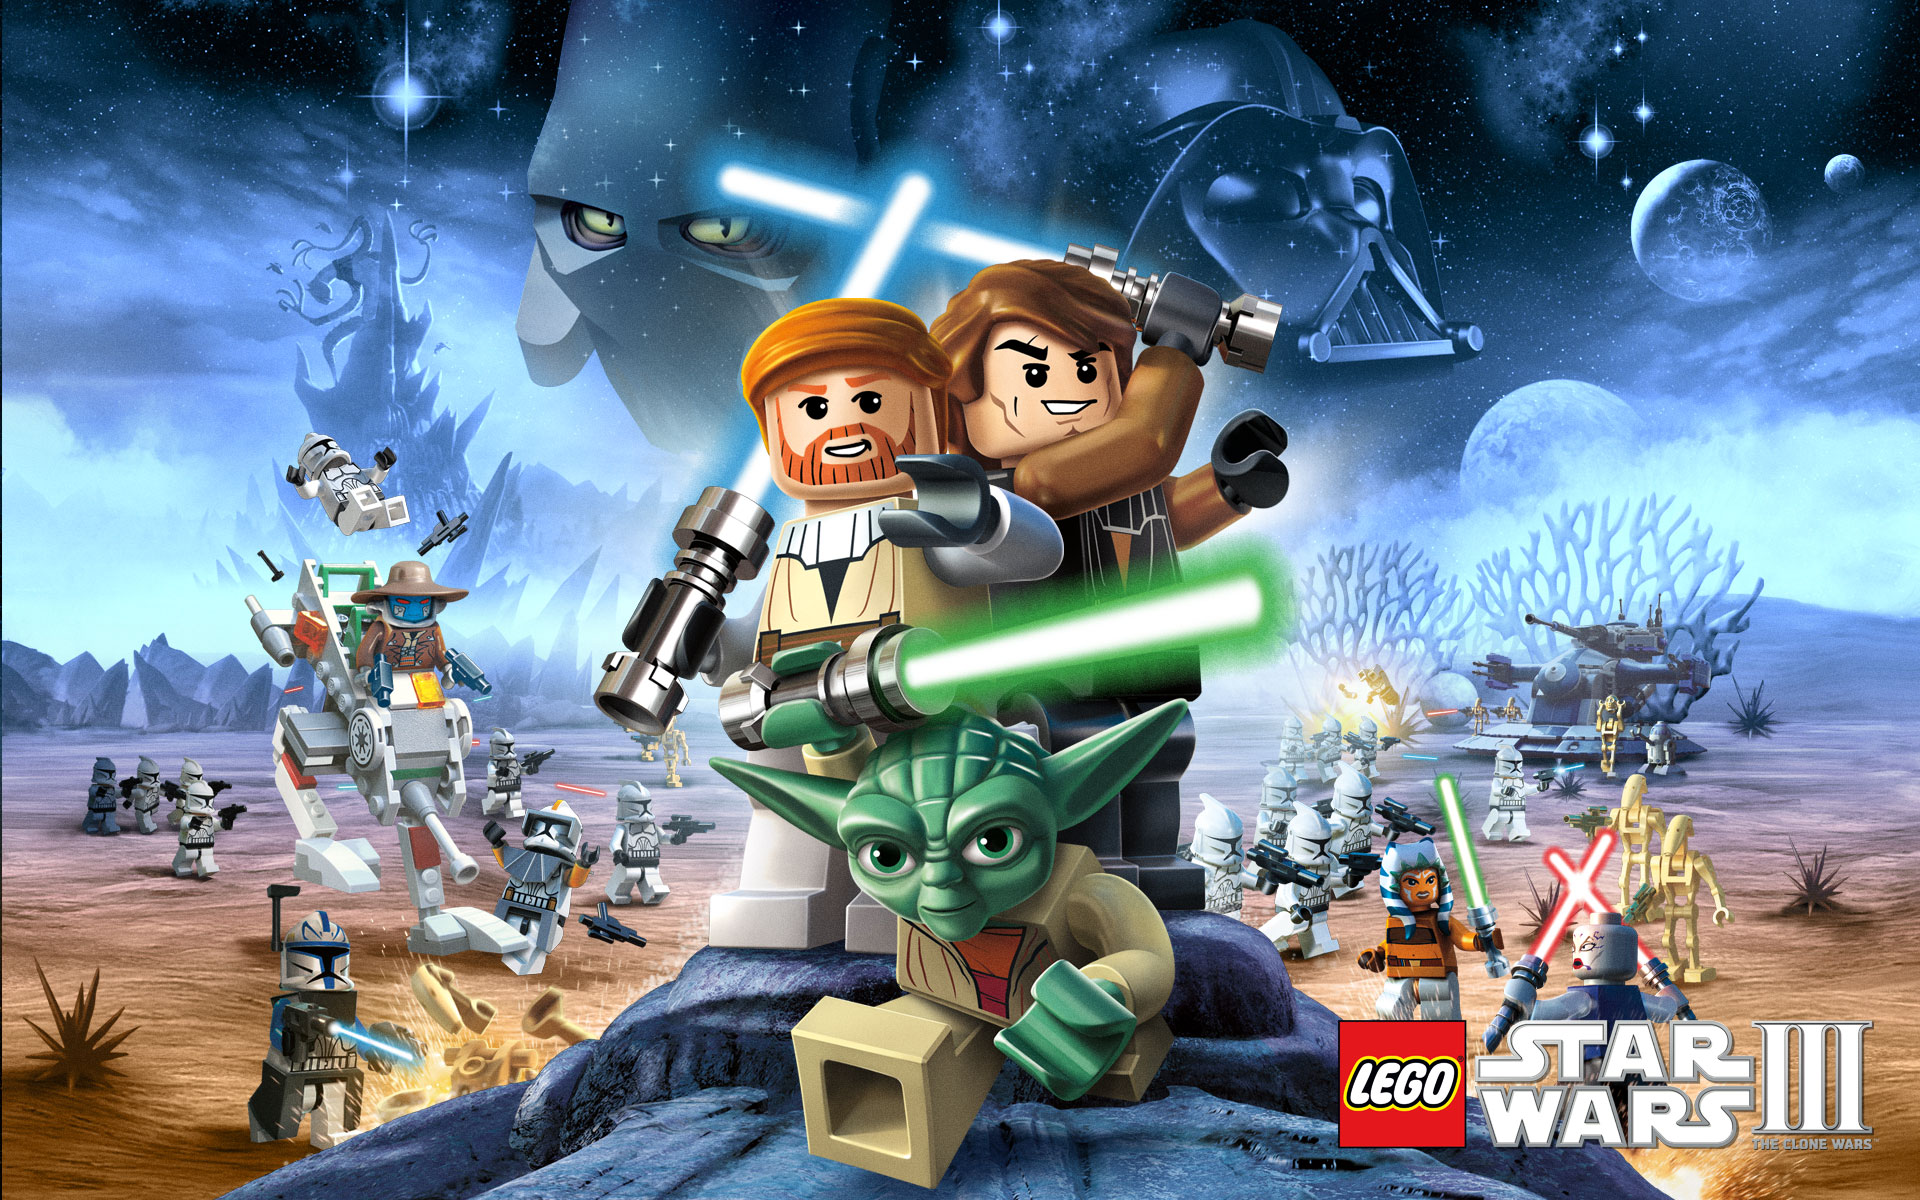 lego star wars 3 the clone wars spiele